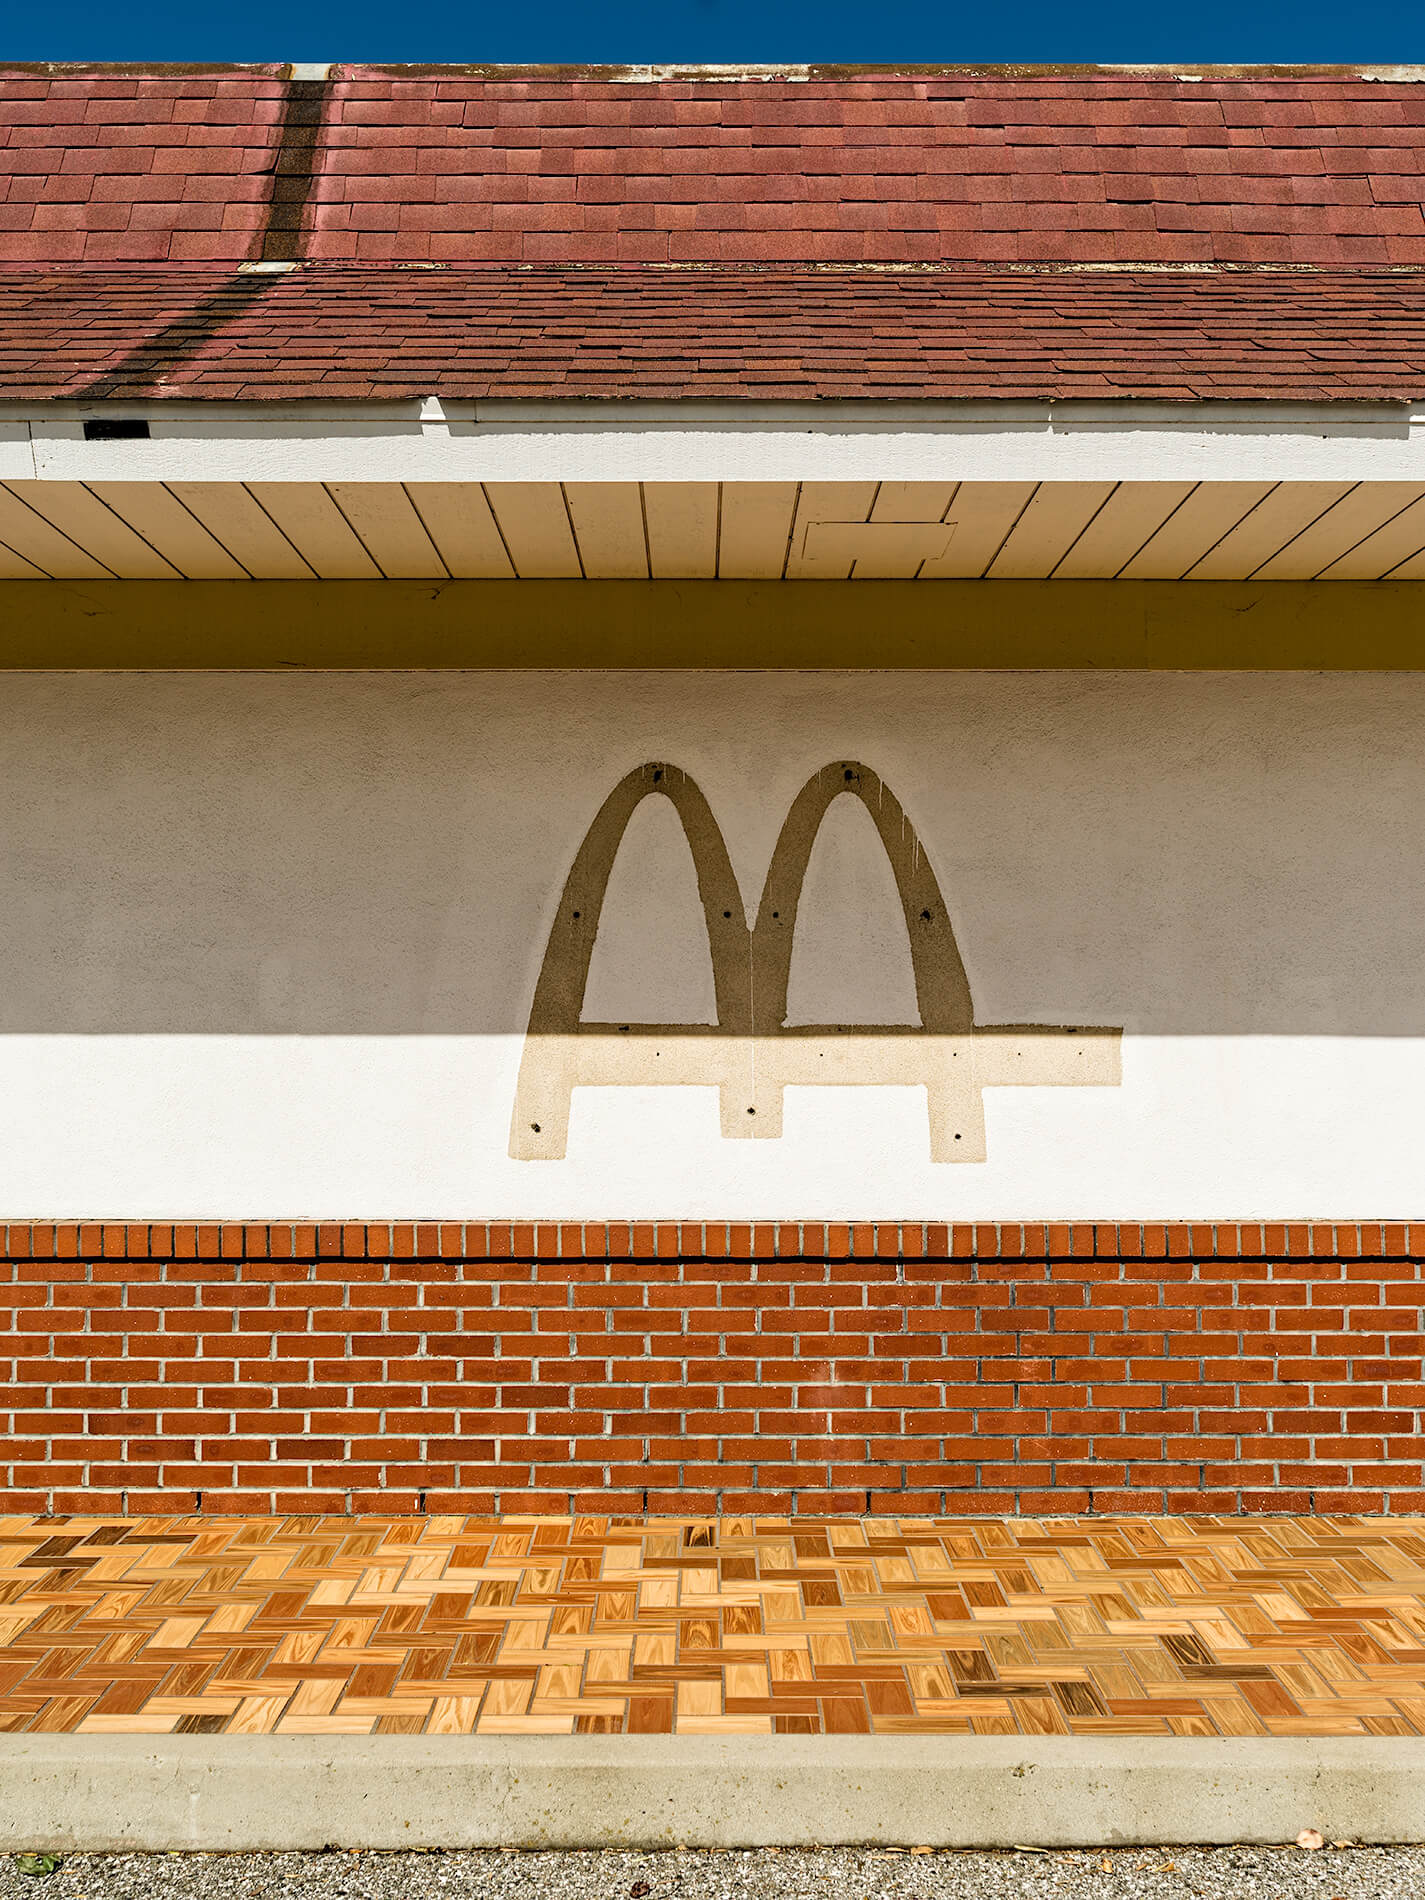 Outline of McDonald's sign at Moffett Field